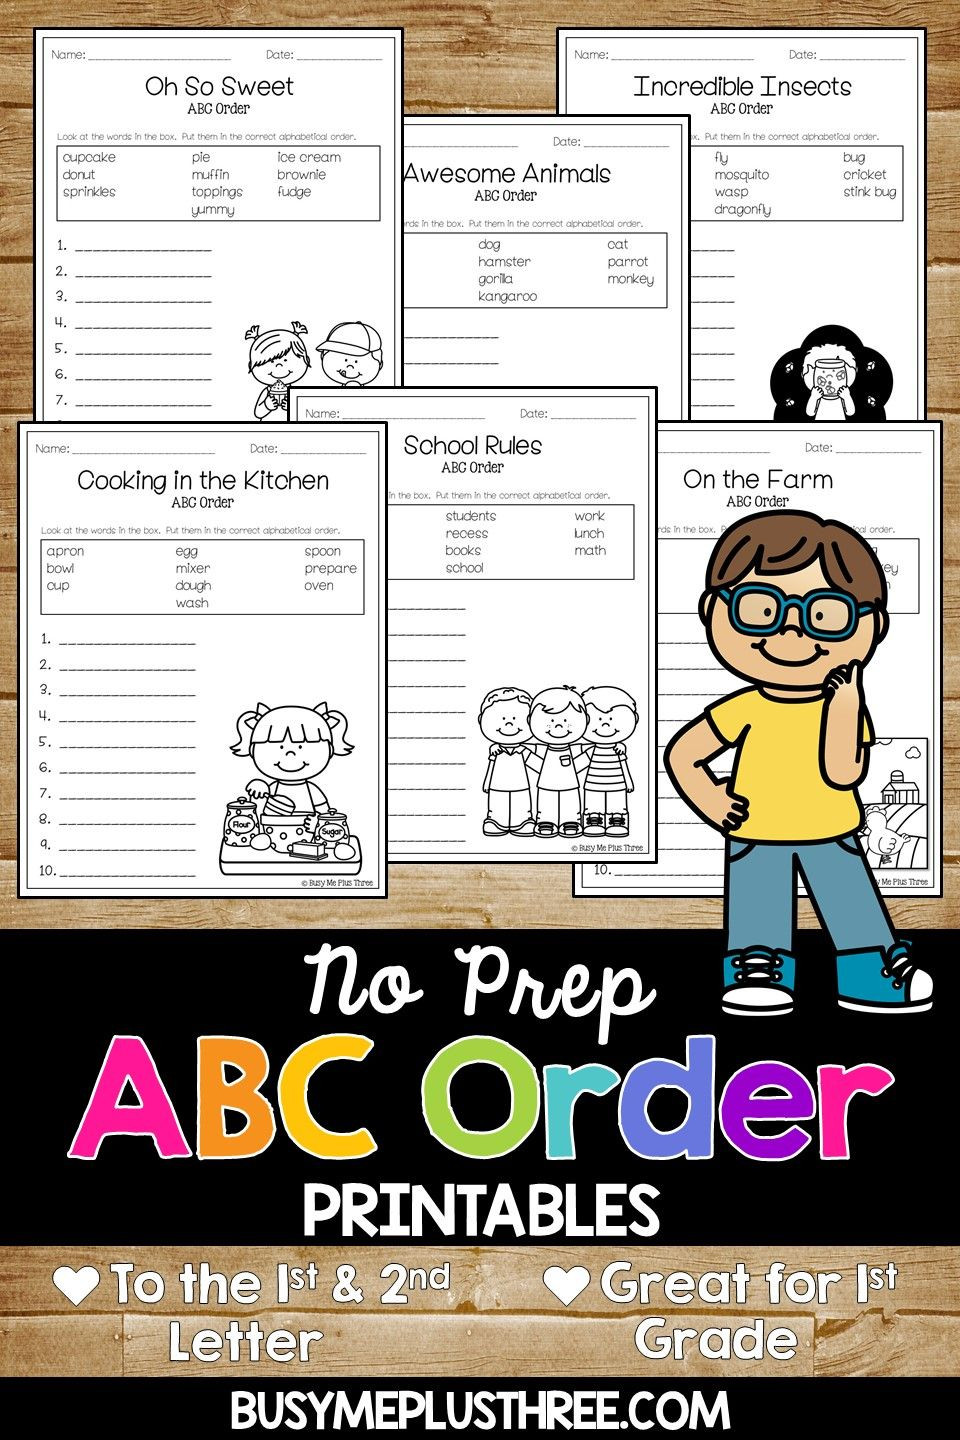 Alphabetical order Worksheets 2nd Grade Abc order Worksheets Alphabetical order Pages for 1st 2nd